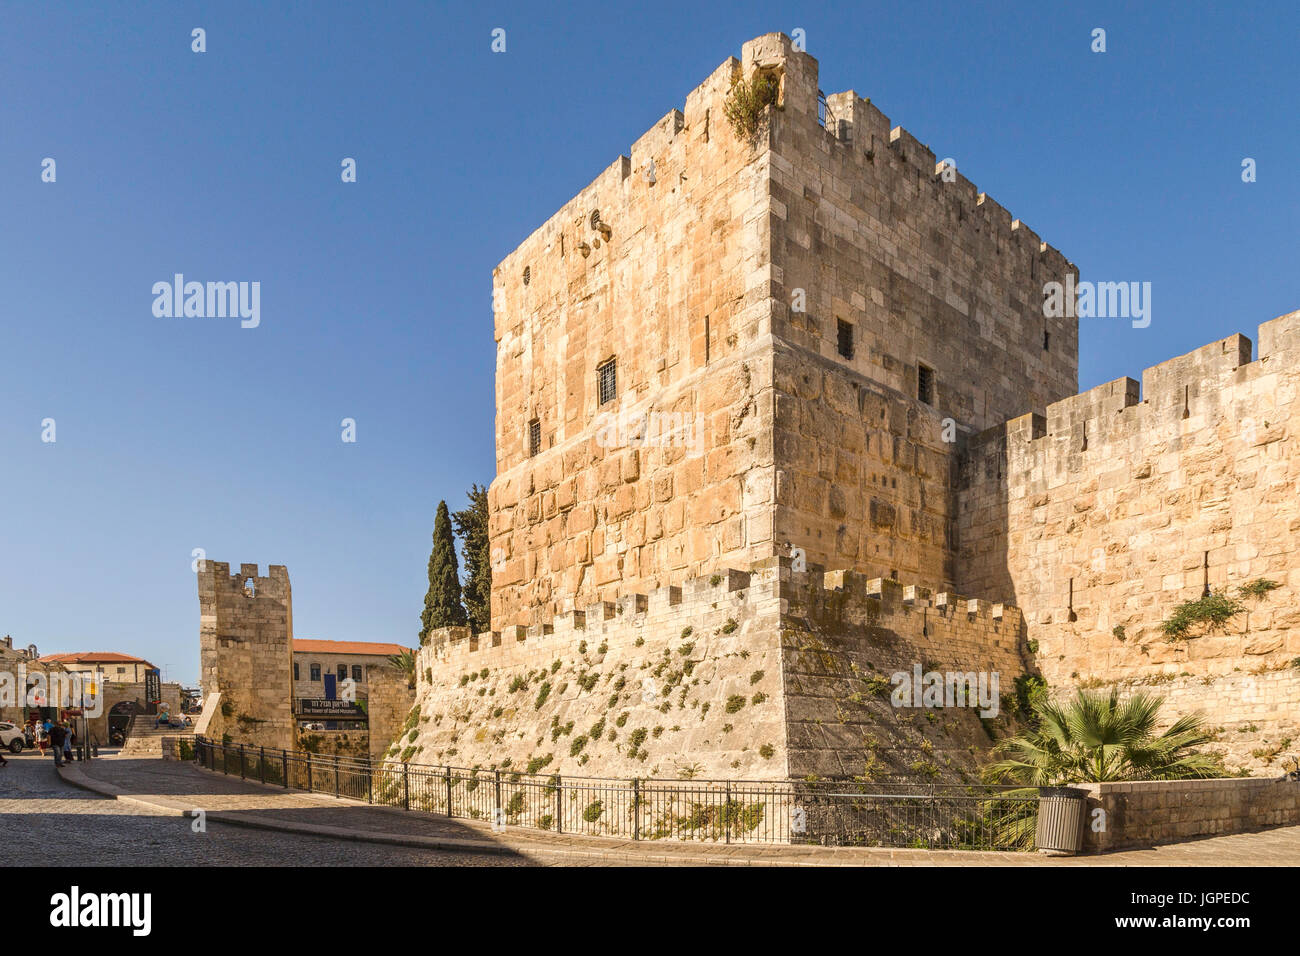 The Citadel ( Tower of David ) near Jaffa Gate, in the Old City of Jerusalem, Israel. - Stock Image